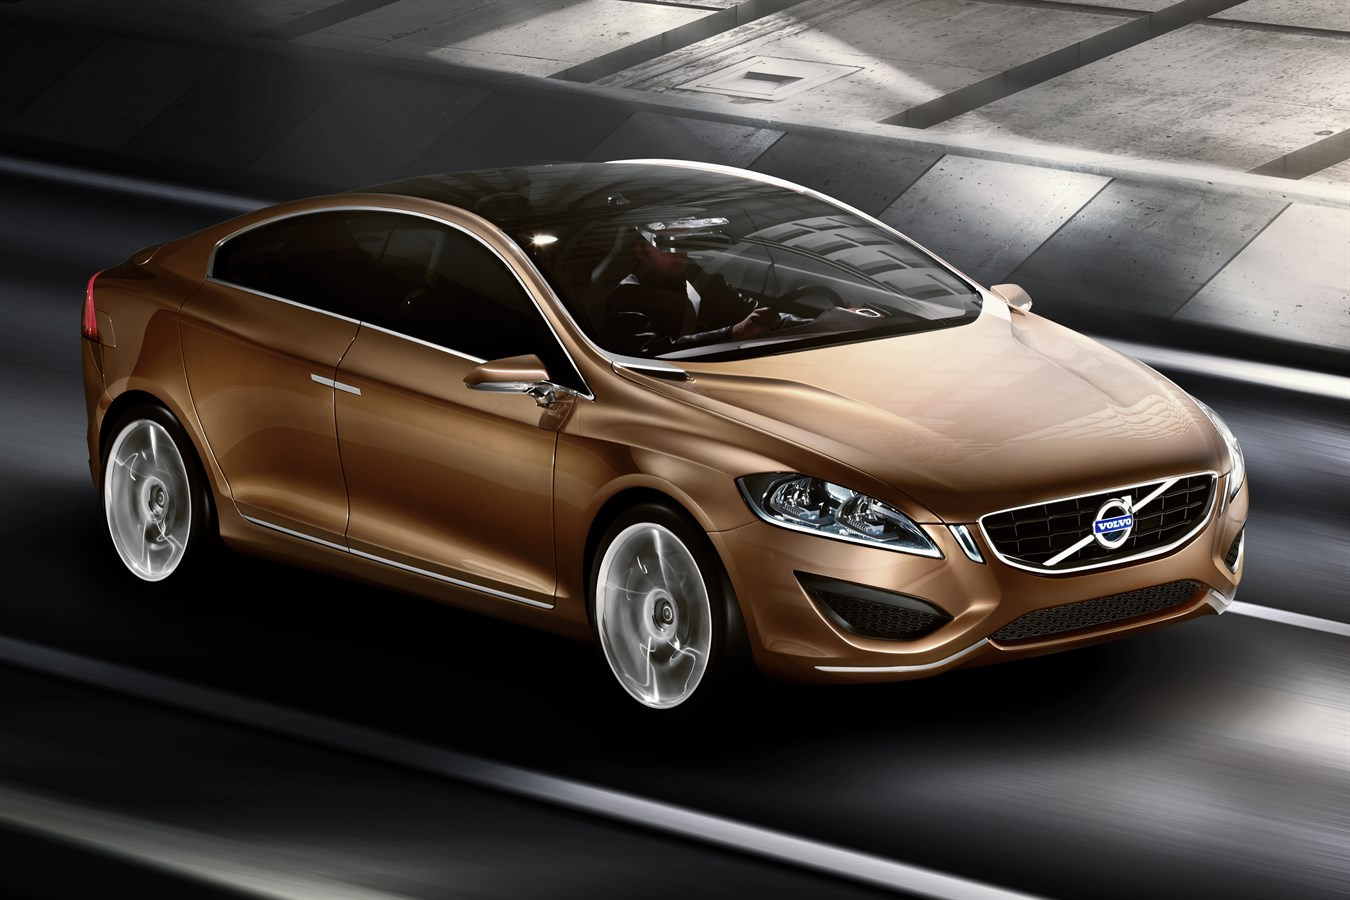 hight resolution of the volvo s60 concept a glimpse of the next generation volvo s60 volvo car uk media newsroom